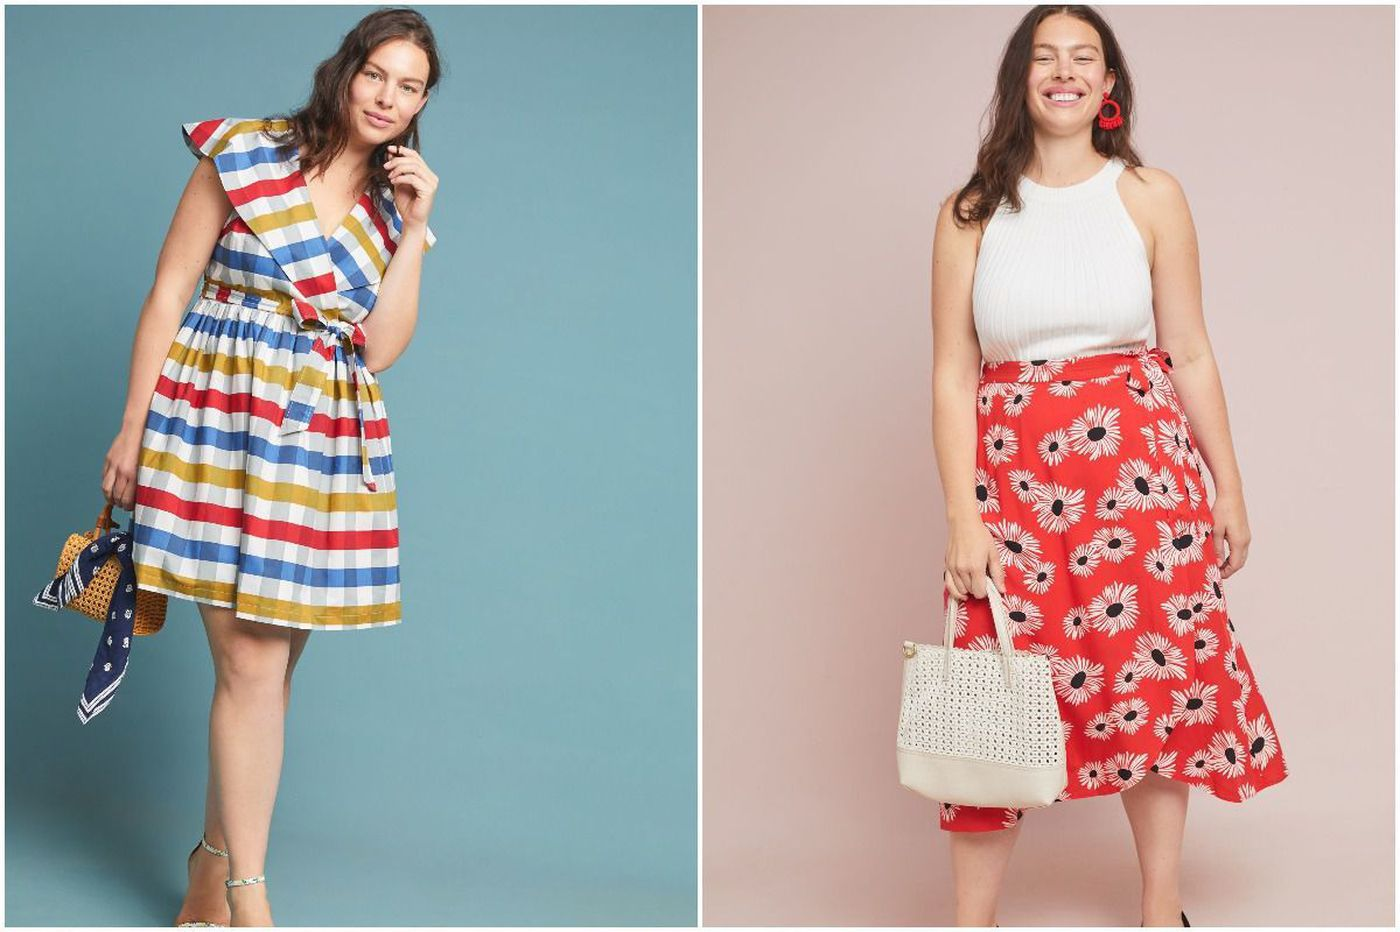 71ef1bf8ce4 Anthropologie launches a plus-size collection in stores